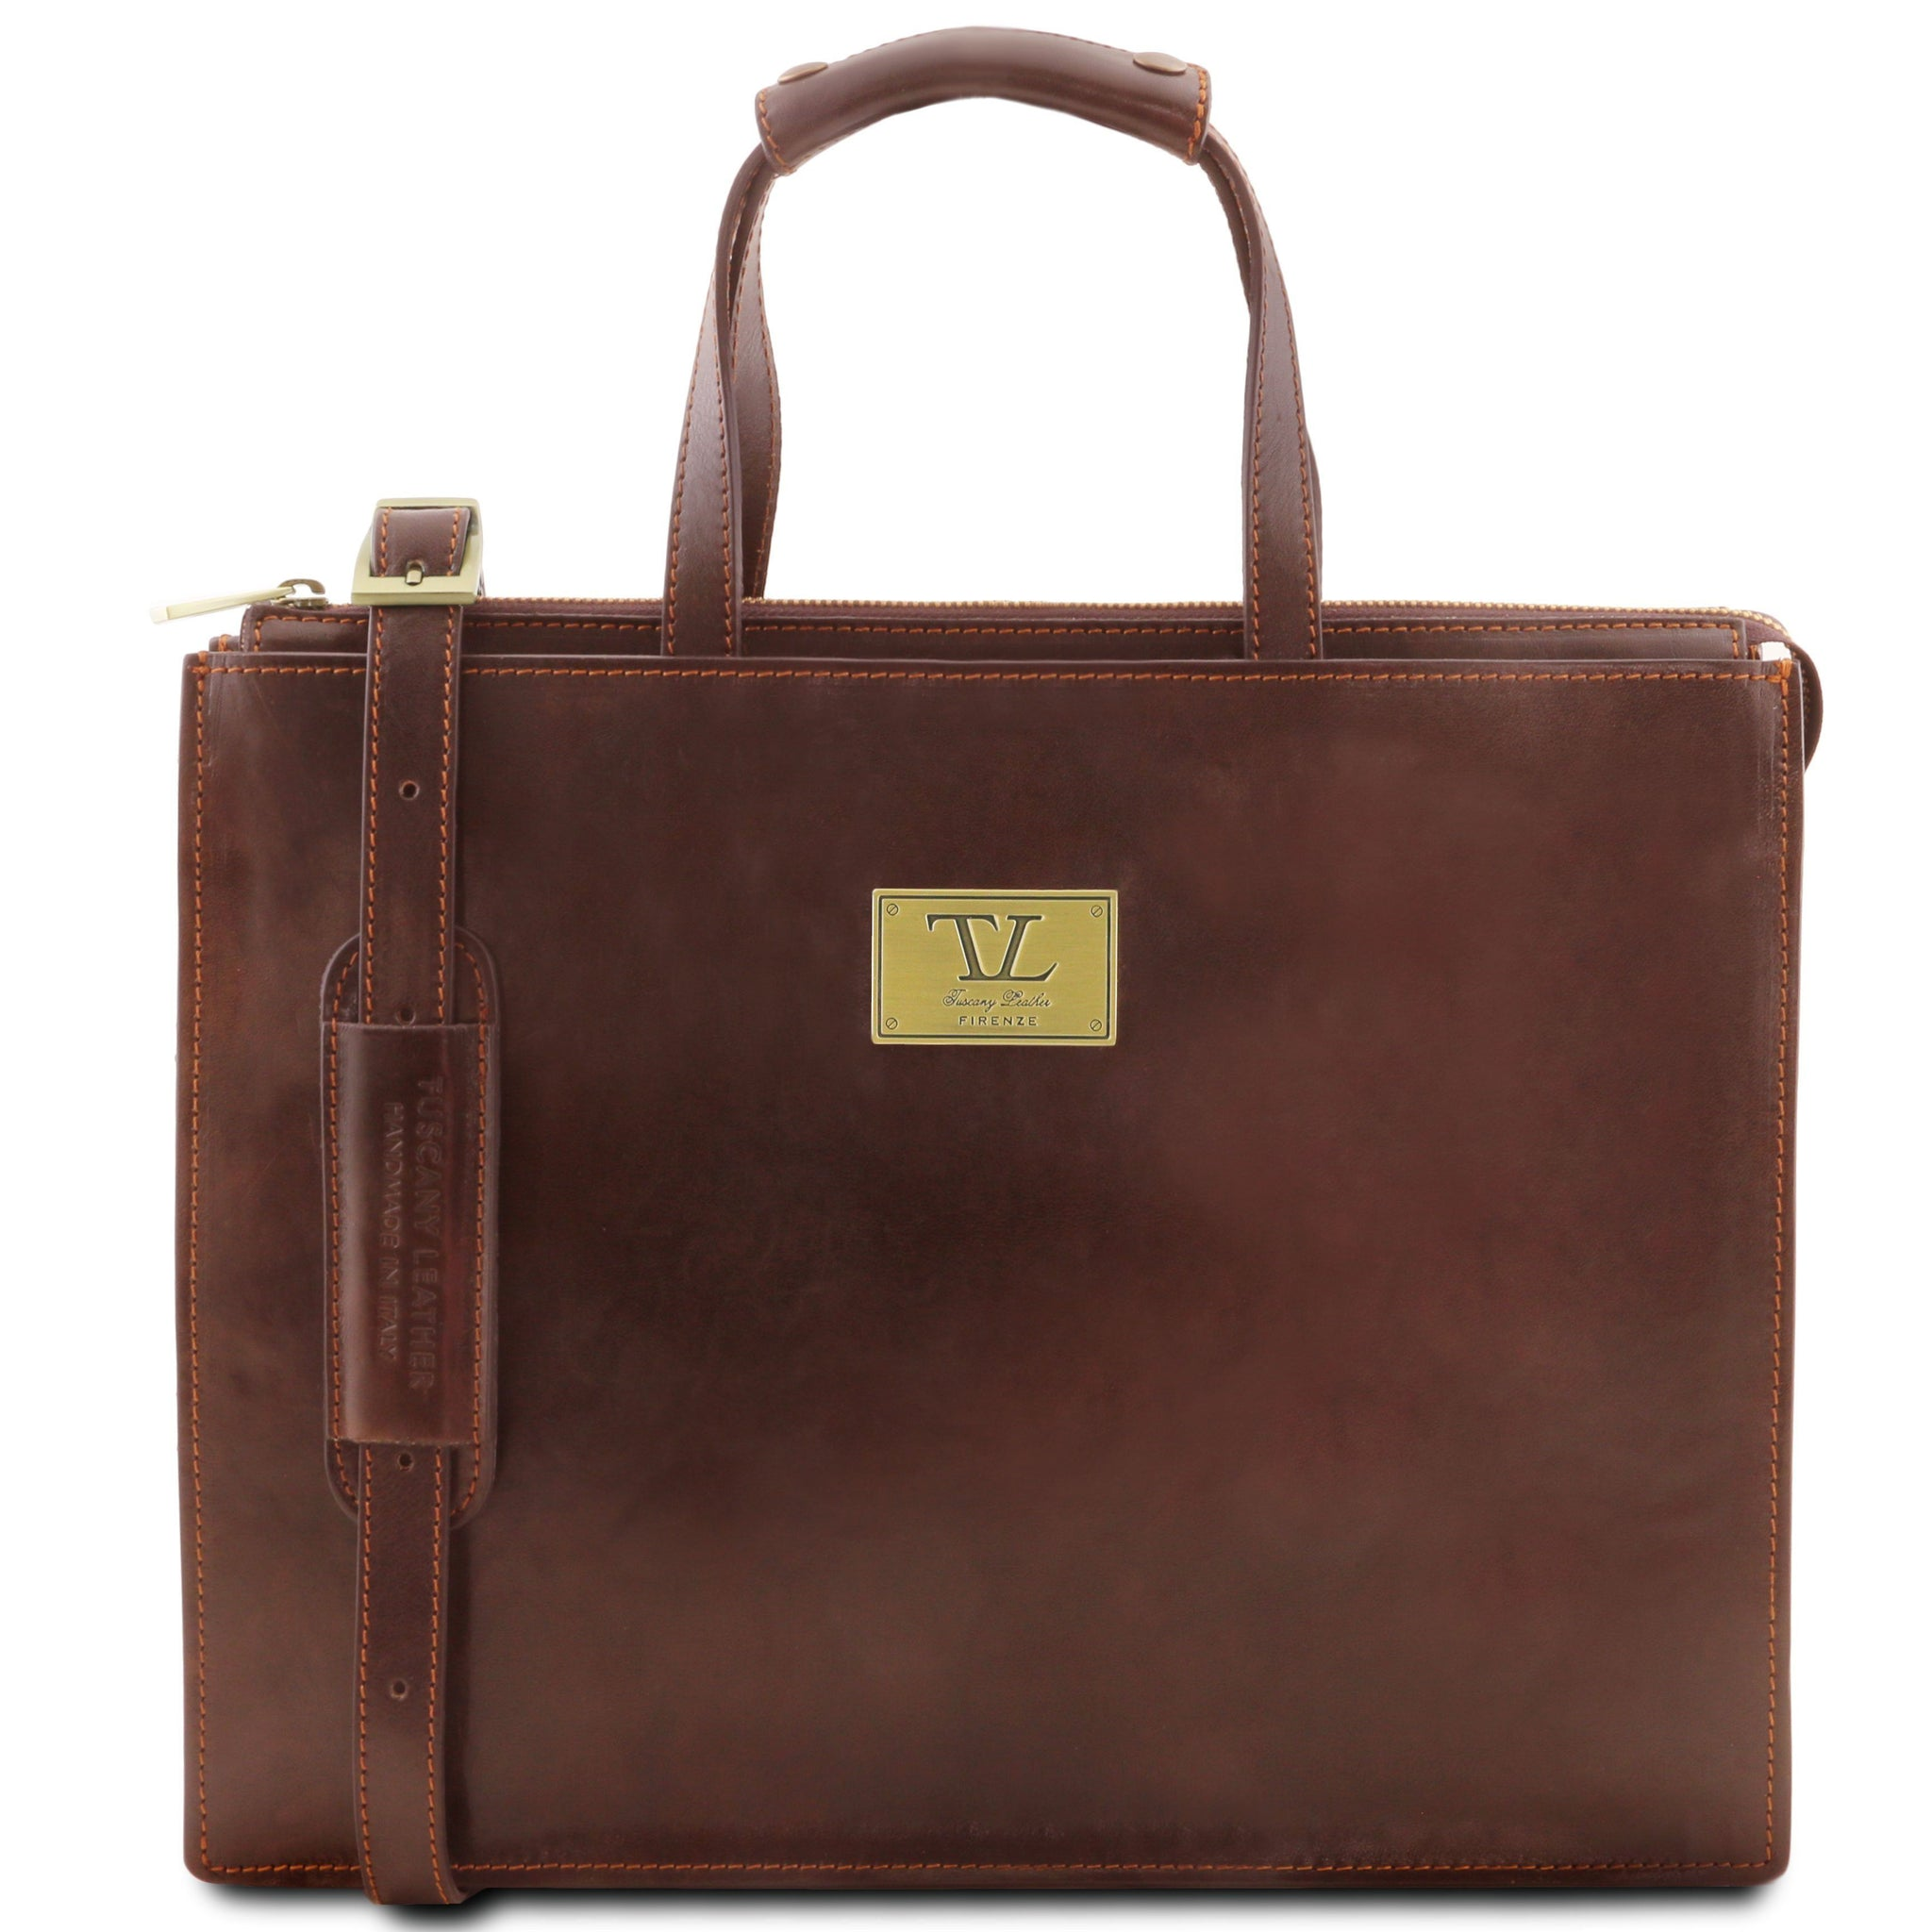 Tuscany Leather 1st Class 'Palermo' Leather Briefcase Laptop Briefcase Tuscany Leather Brown